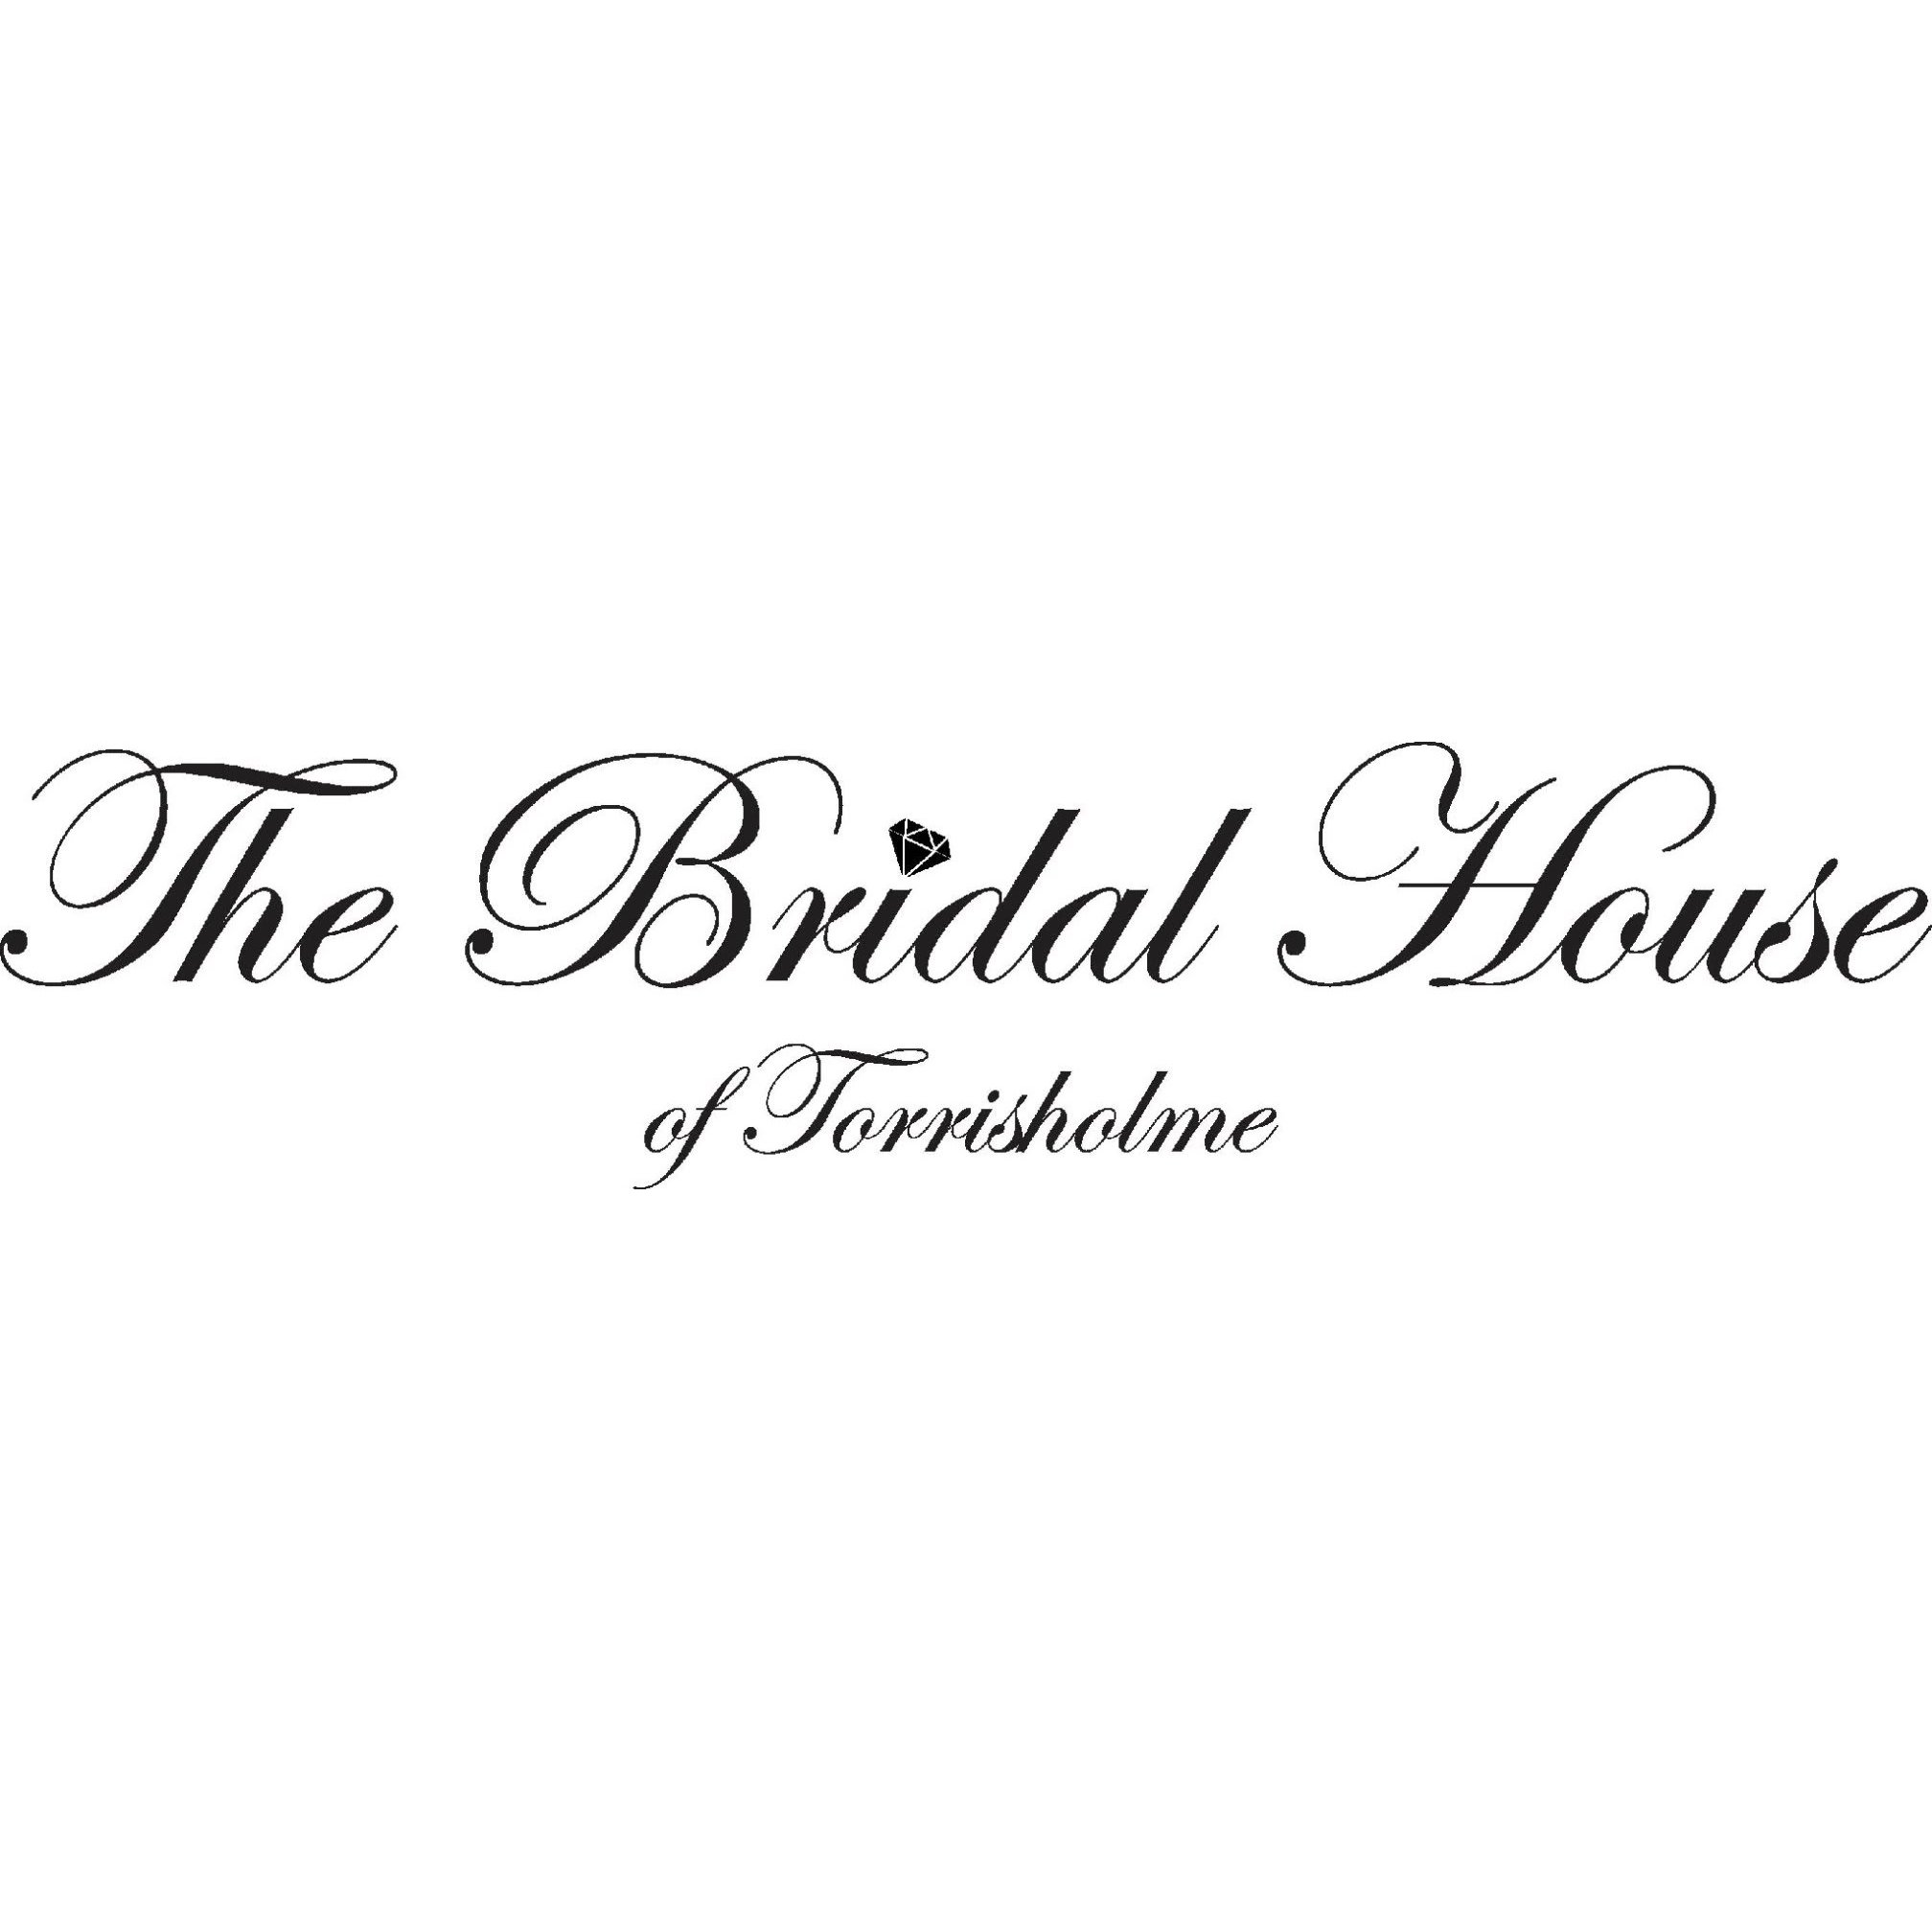 Bridal House of Torrisholme - Morecambe, Lancashire LA4 6LY - 01524 421337 | ShowMeLocal.com